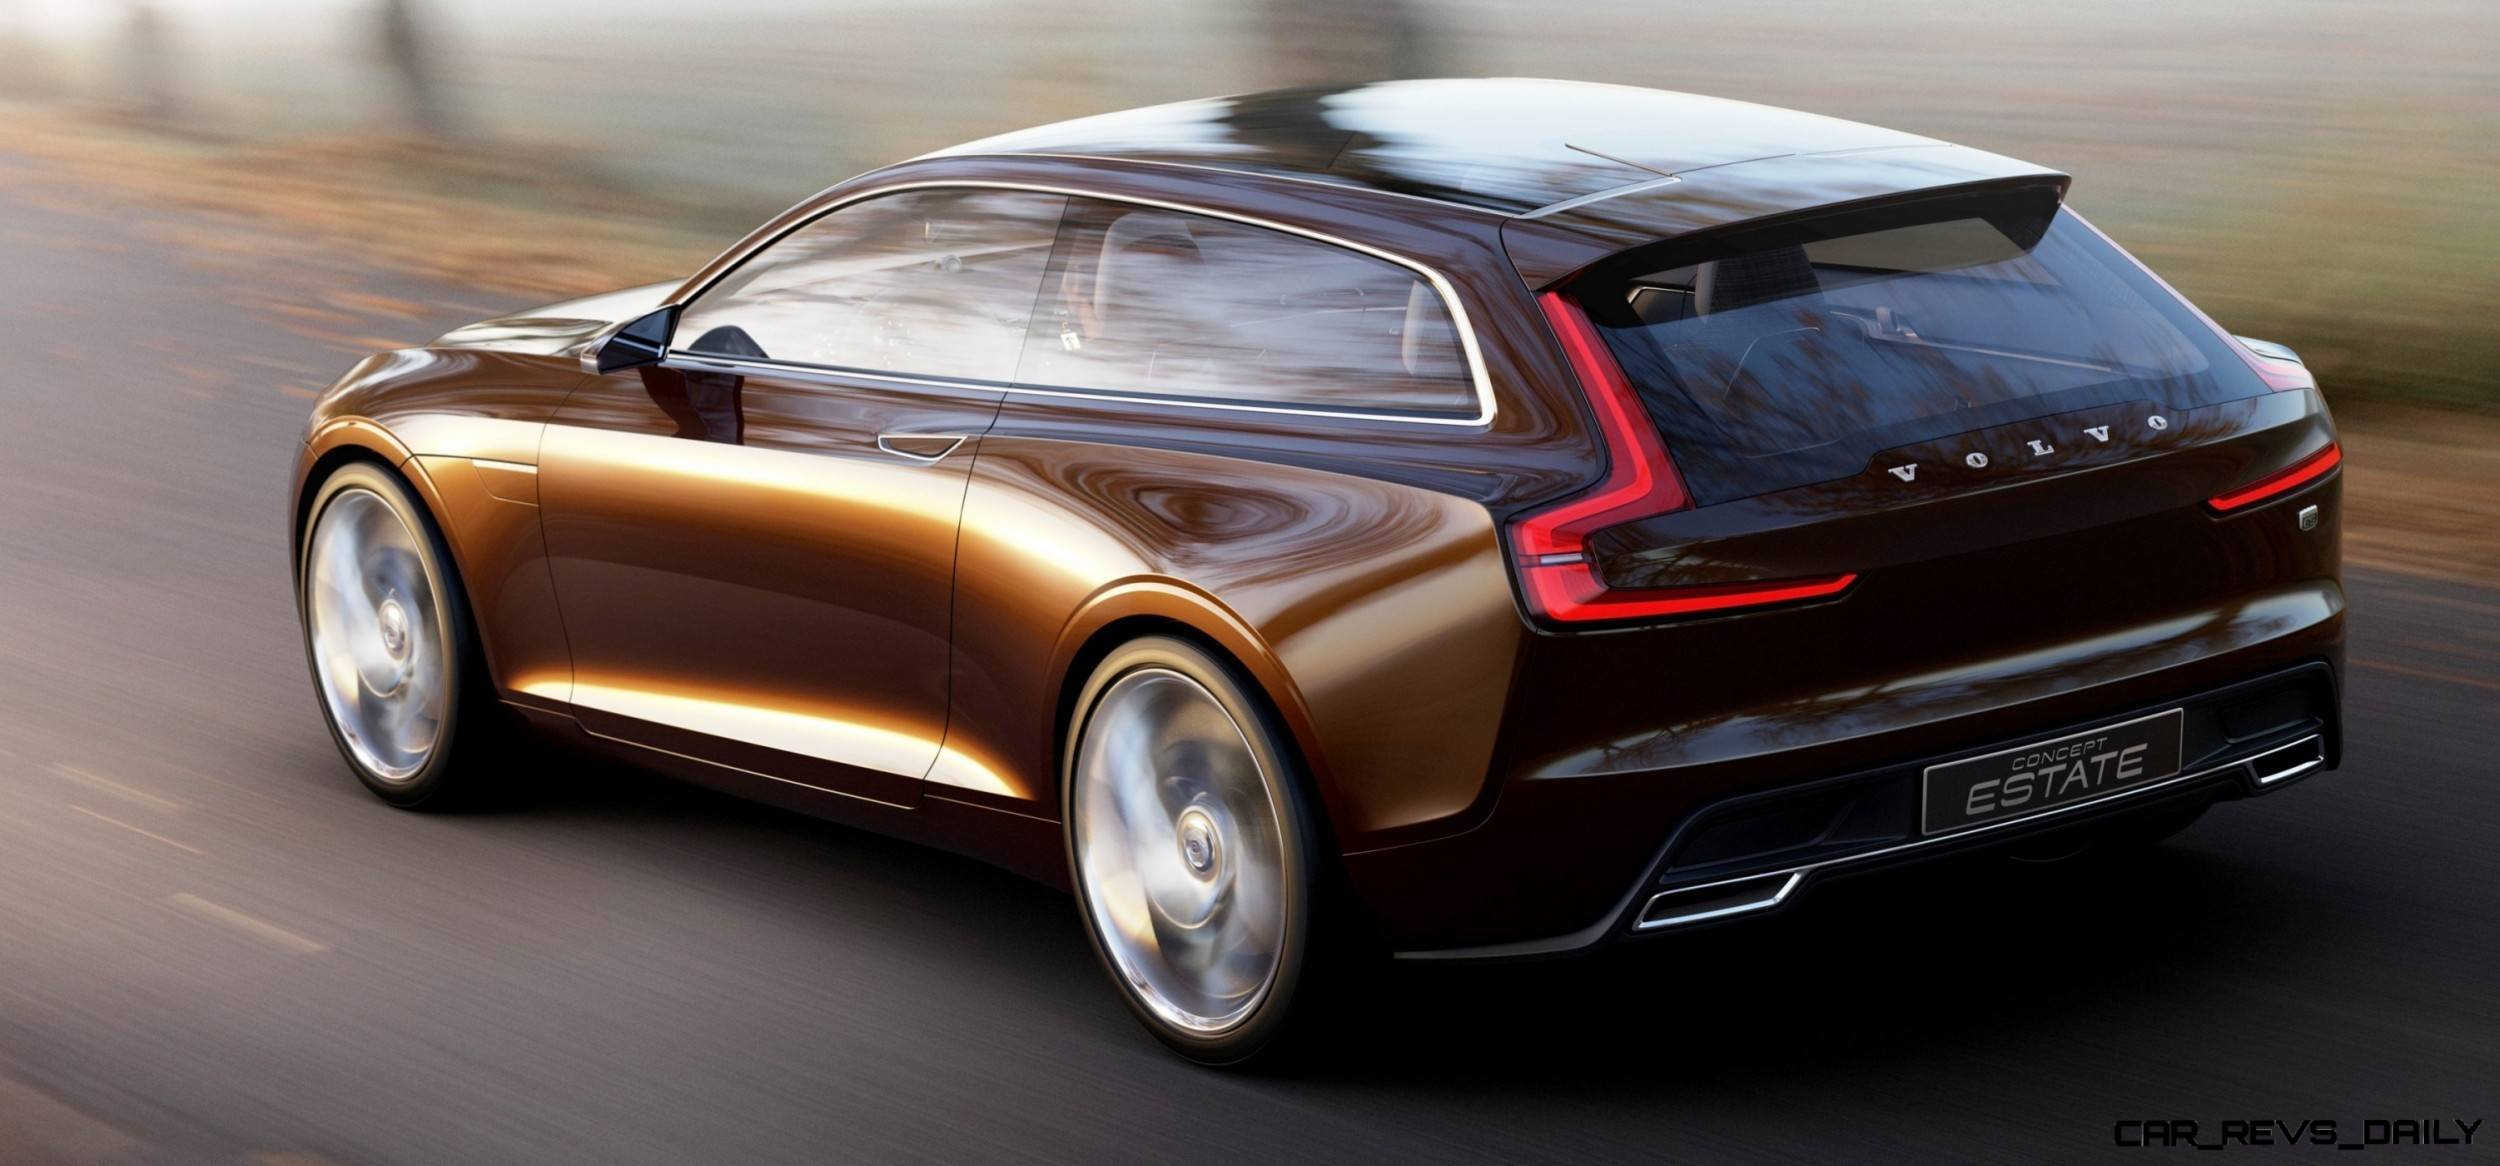 Concept Estate Confirms It! Volvo's New Design Lead Th. Ingenlath Should Be Sweden's Man of the Year 12